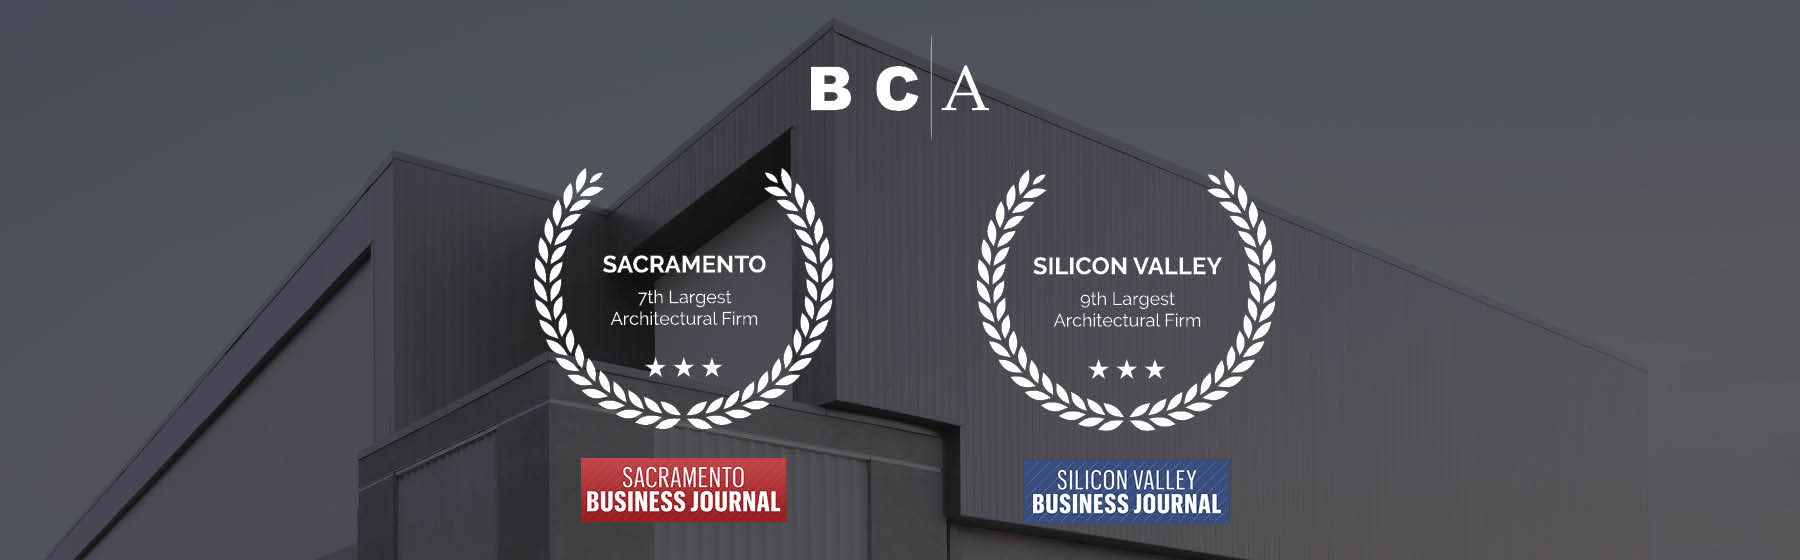 BCA Architects Earns Top Architectural Firm Rankings